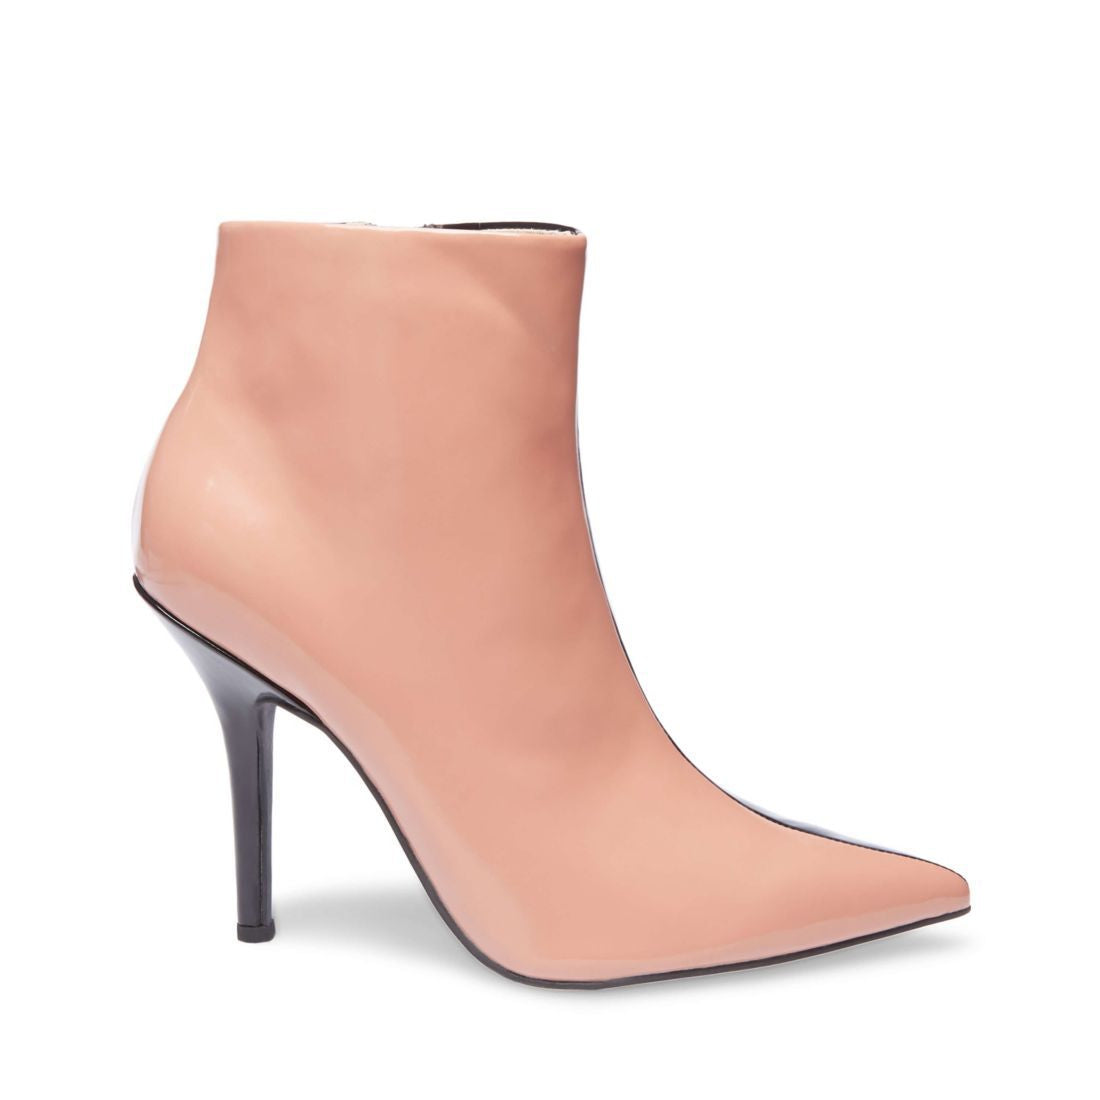 23454a3ee4 holidayexcludeproduct –translation missing  en.general.meta.tags–  translation missing  en.general.meta.page – Steve Madden